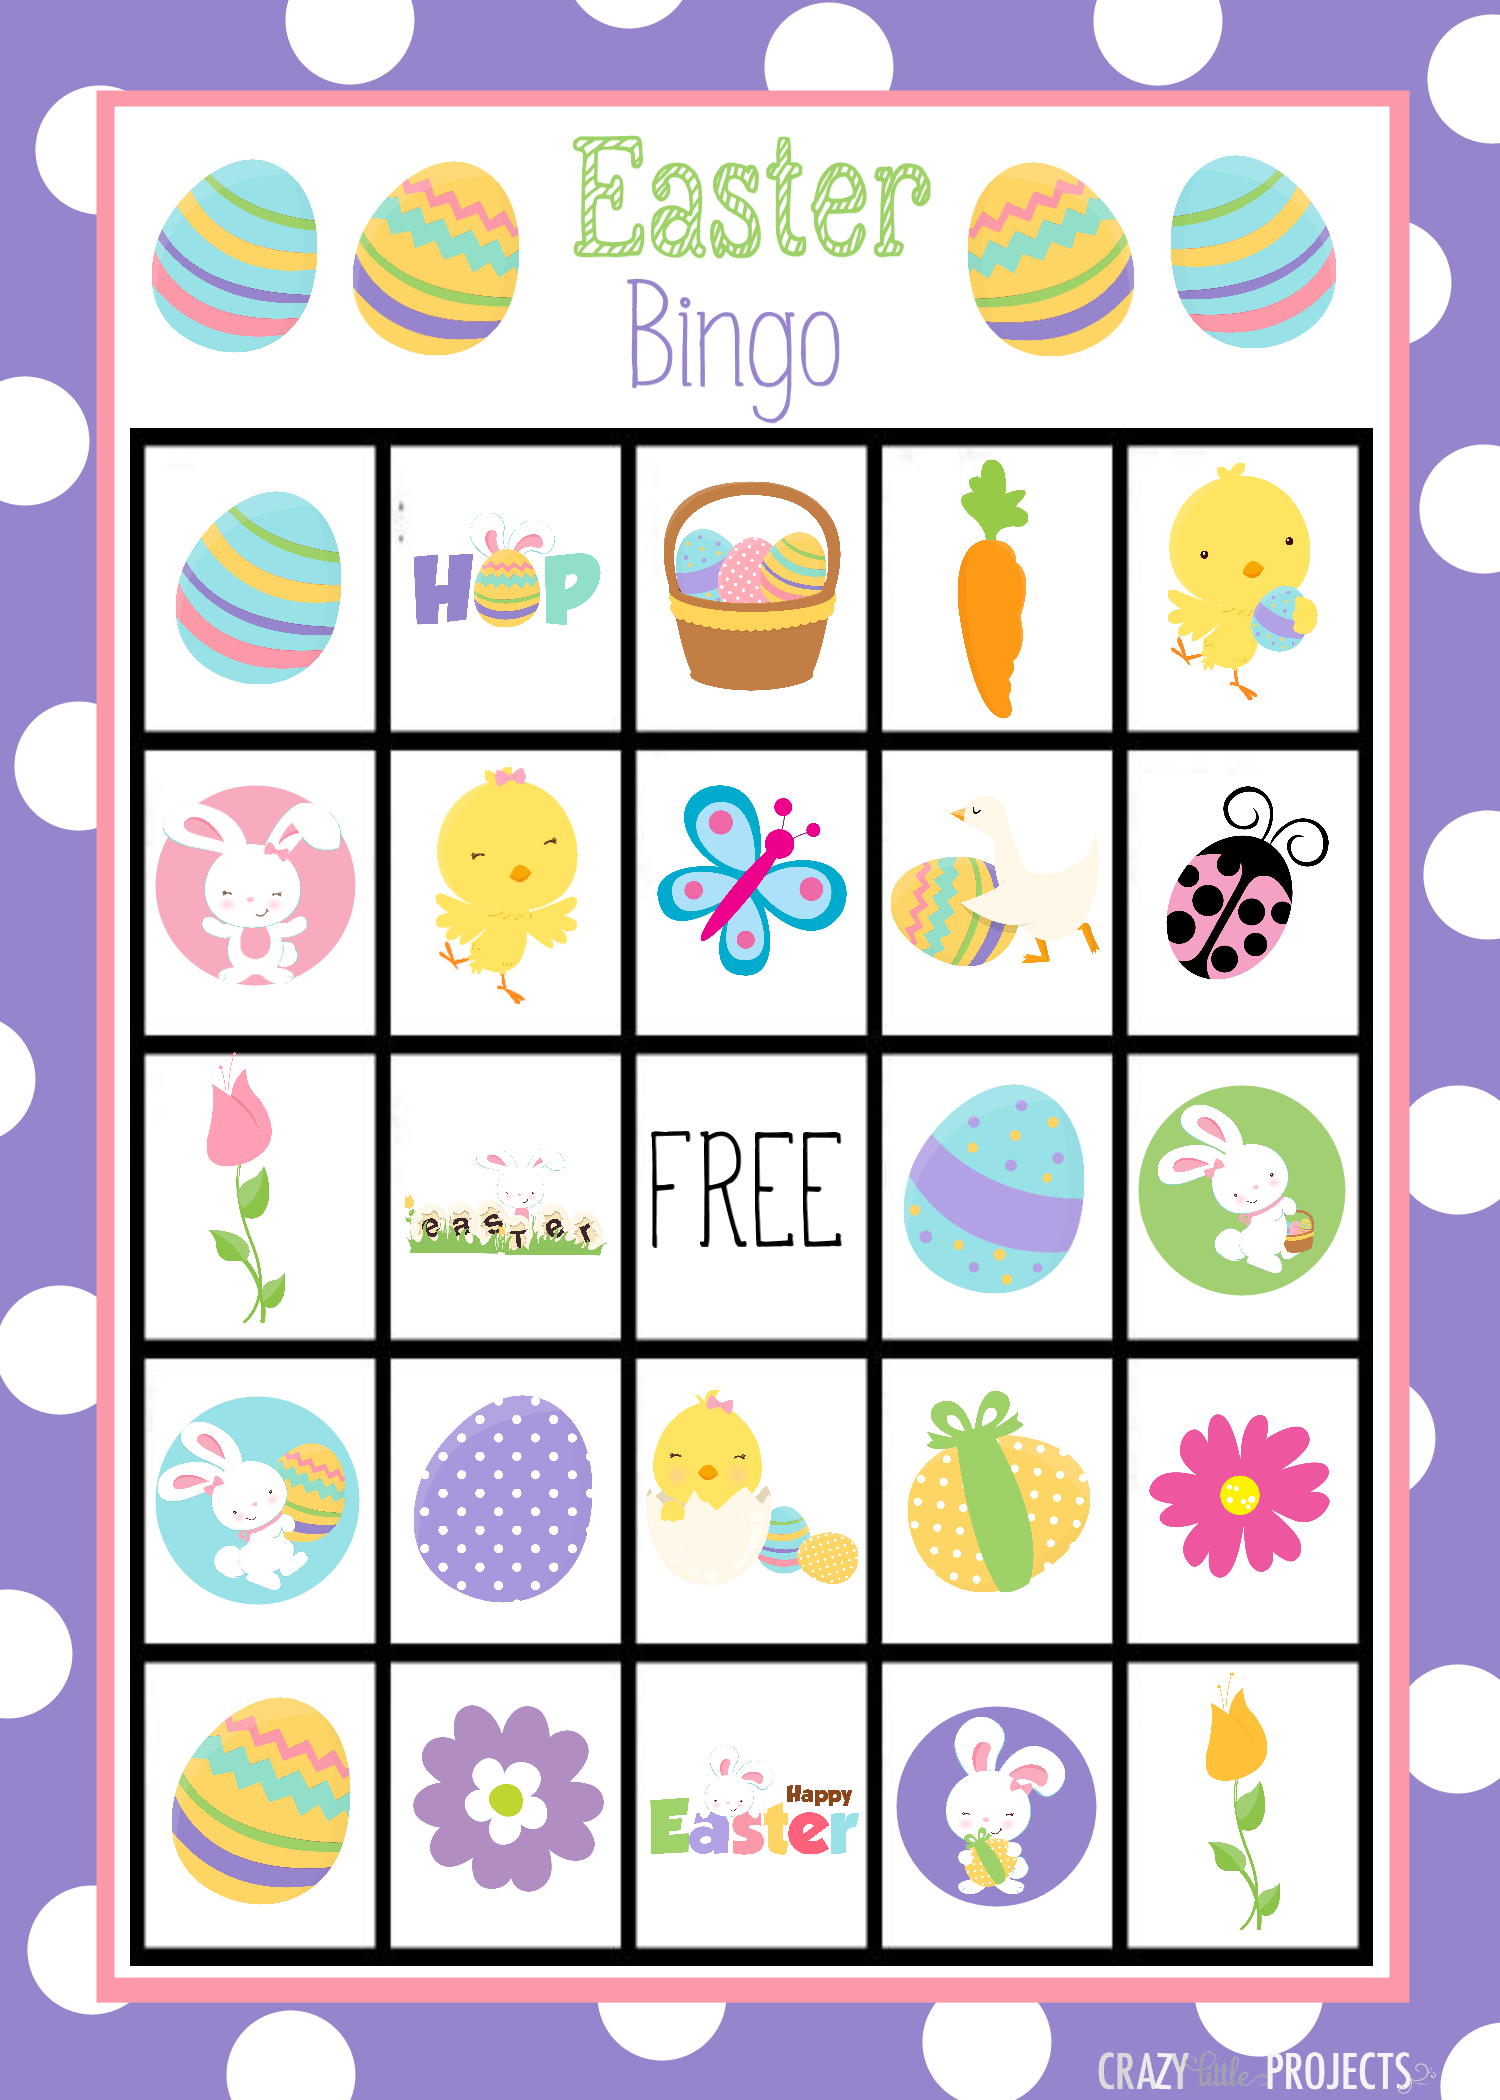 Printable Easter Bingo Game For Kids Easter Ideas Baby Shower